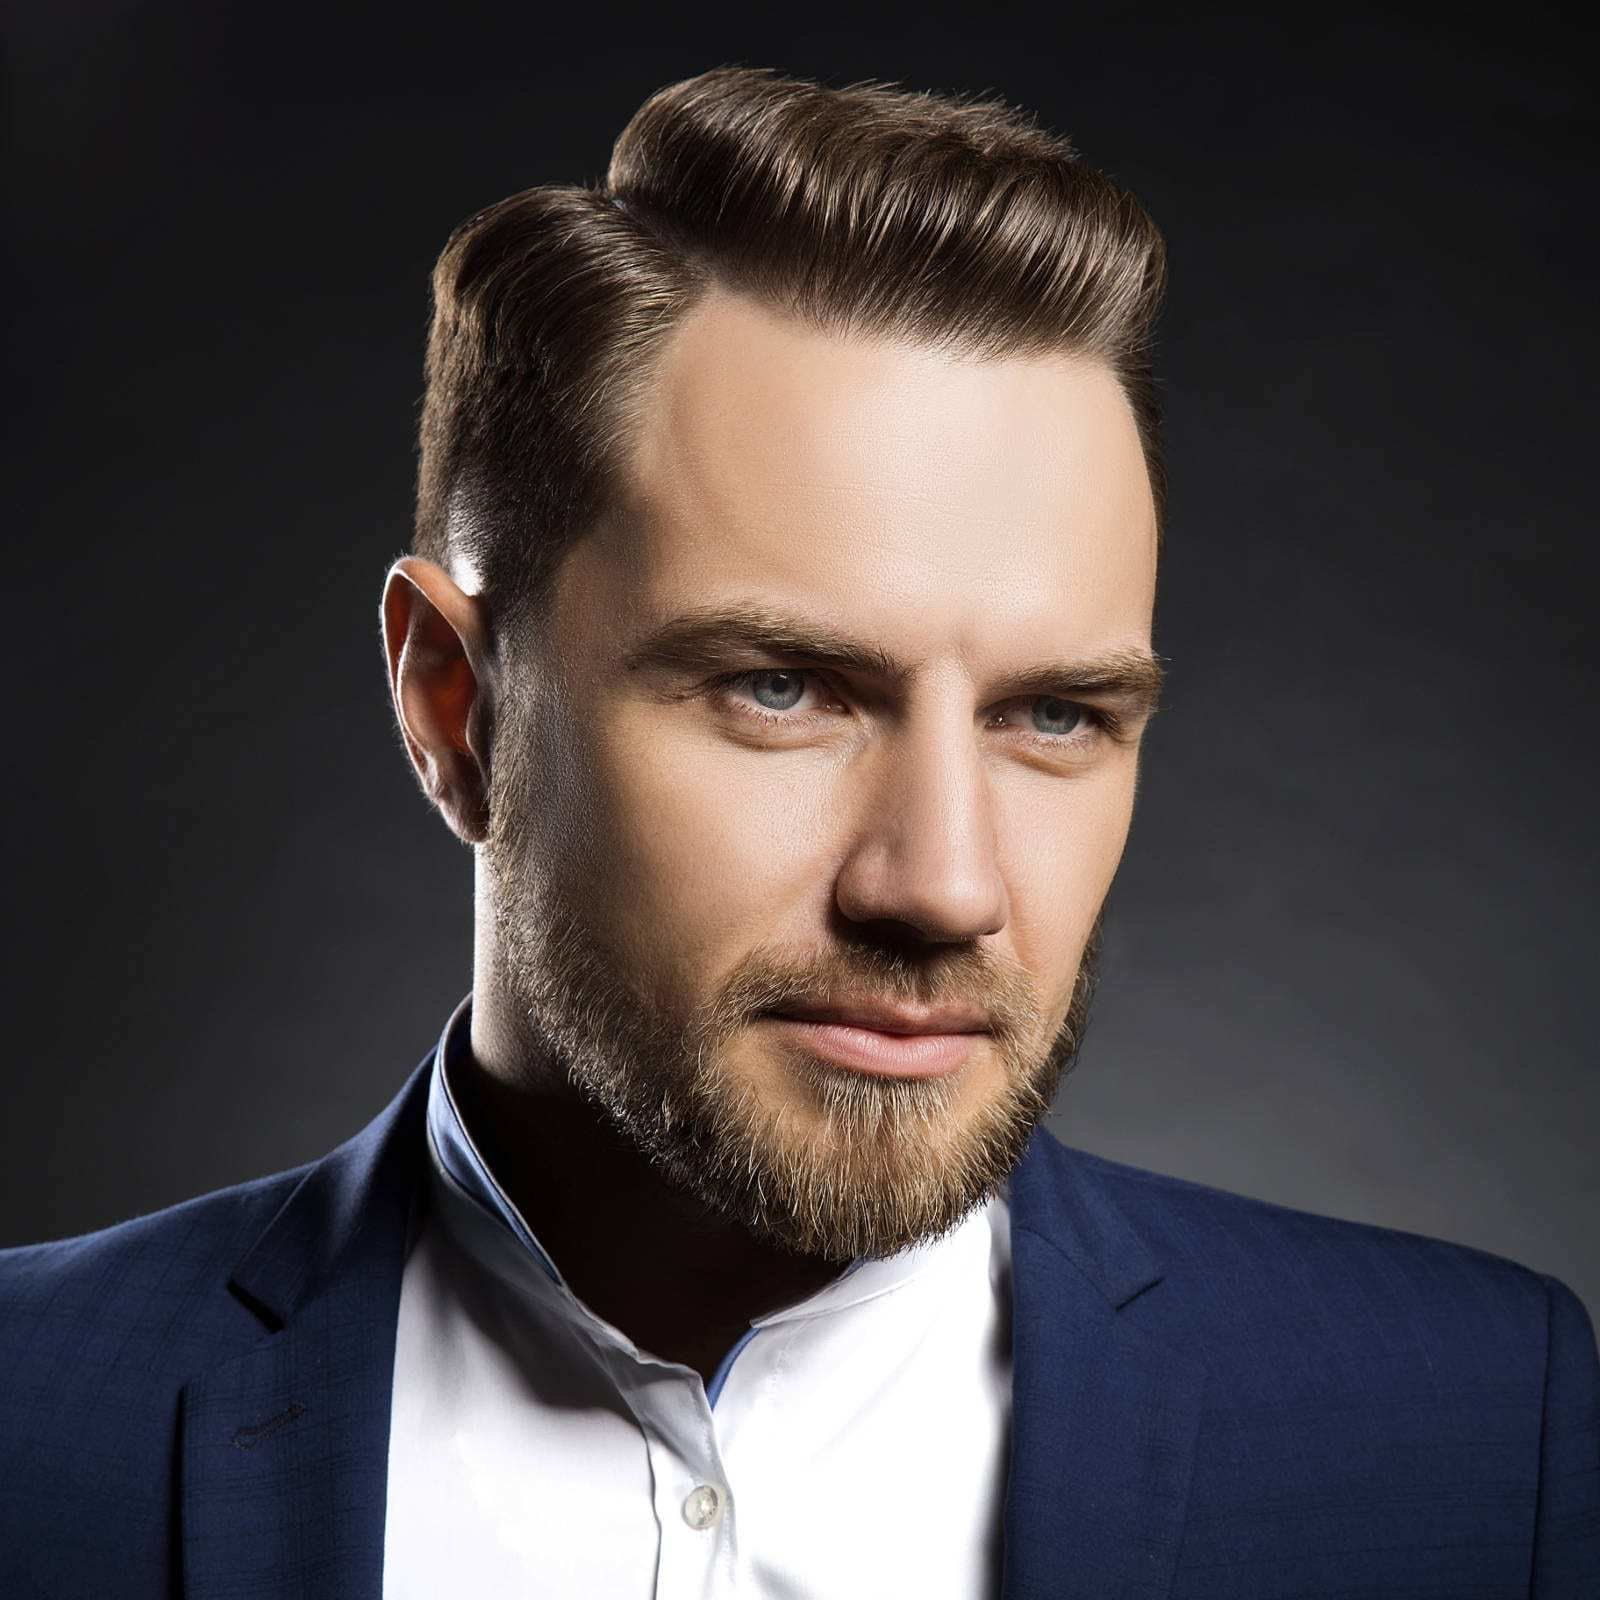 The Best The Side Part Haircut A Classic Style For Gentlemen Pictures